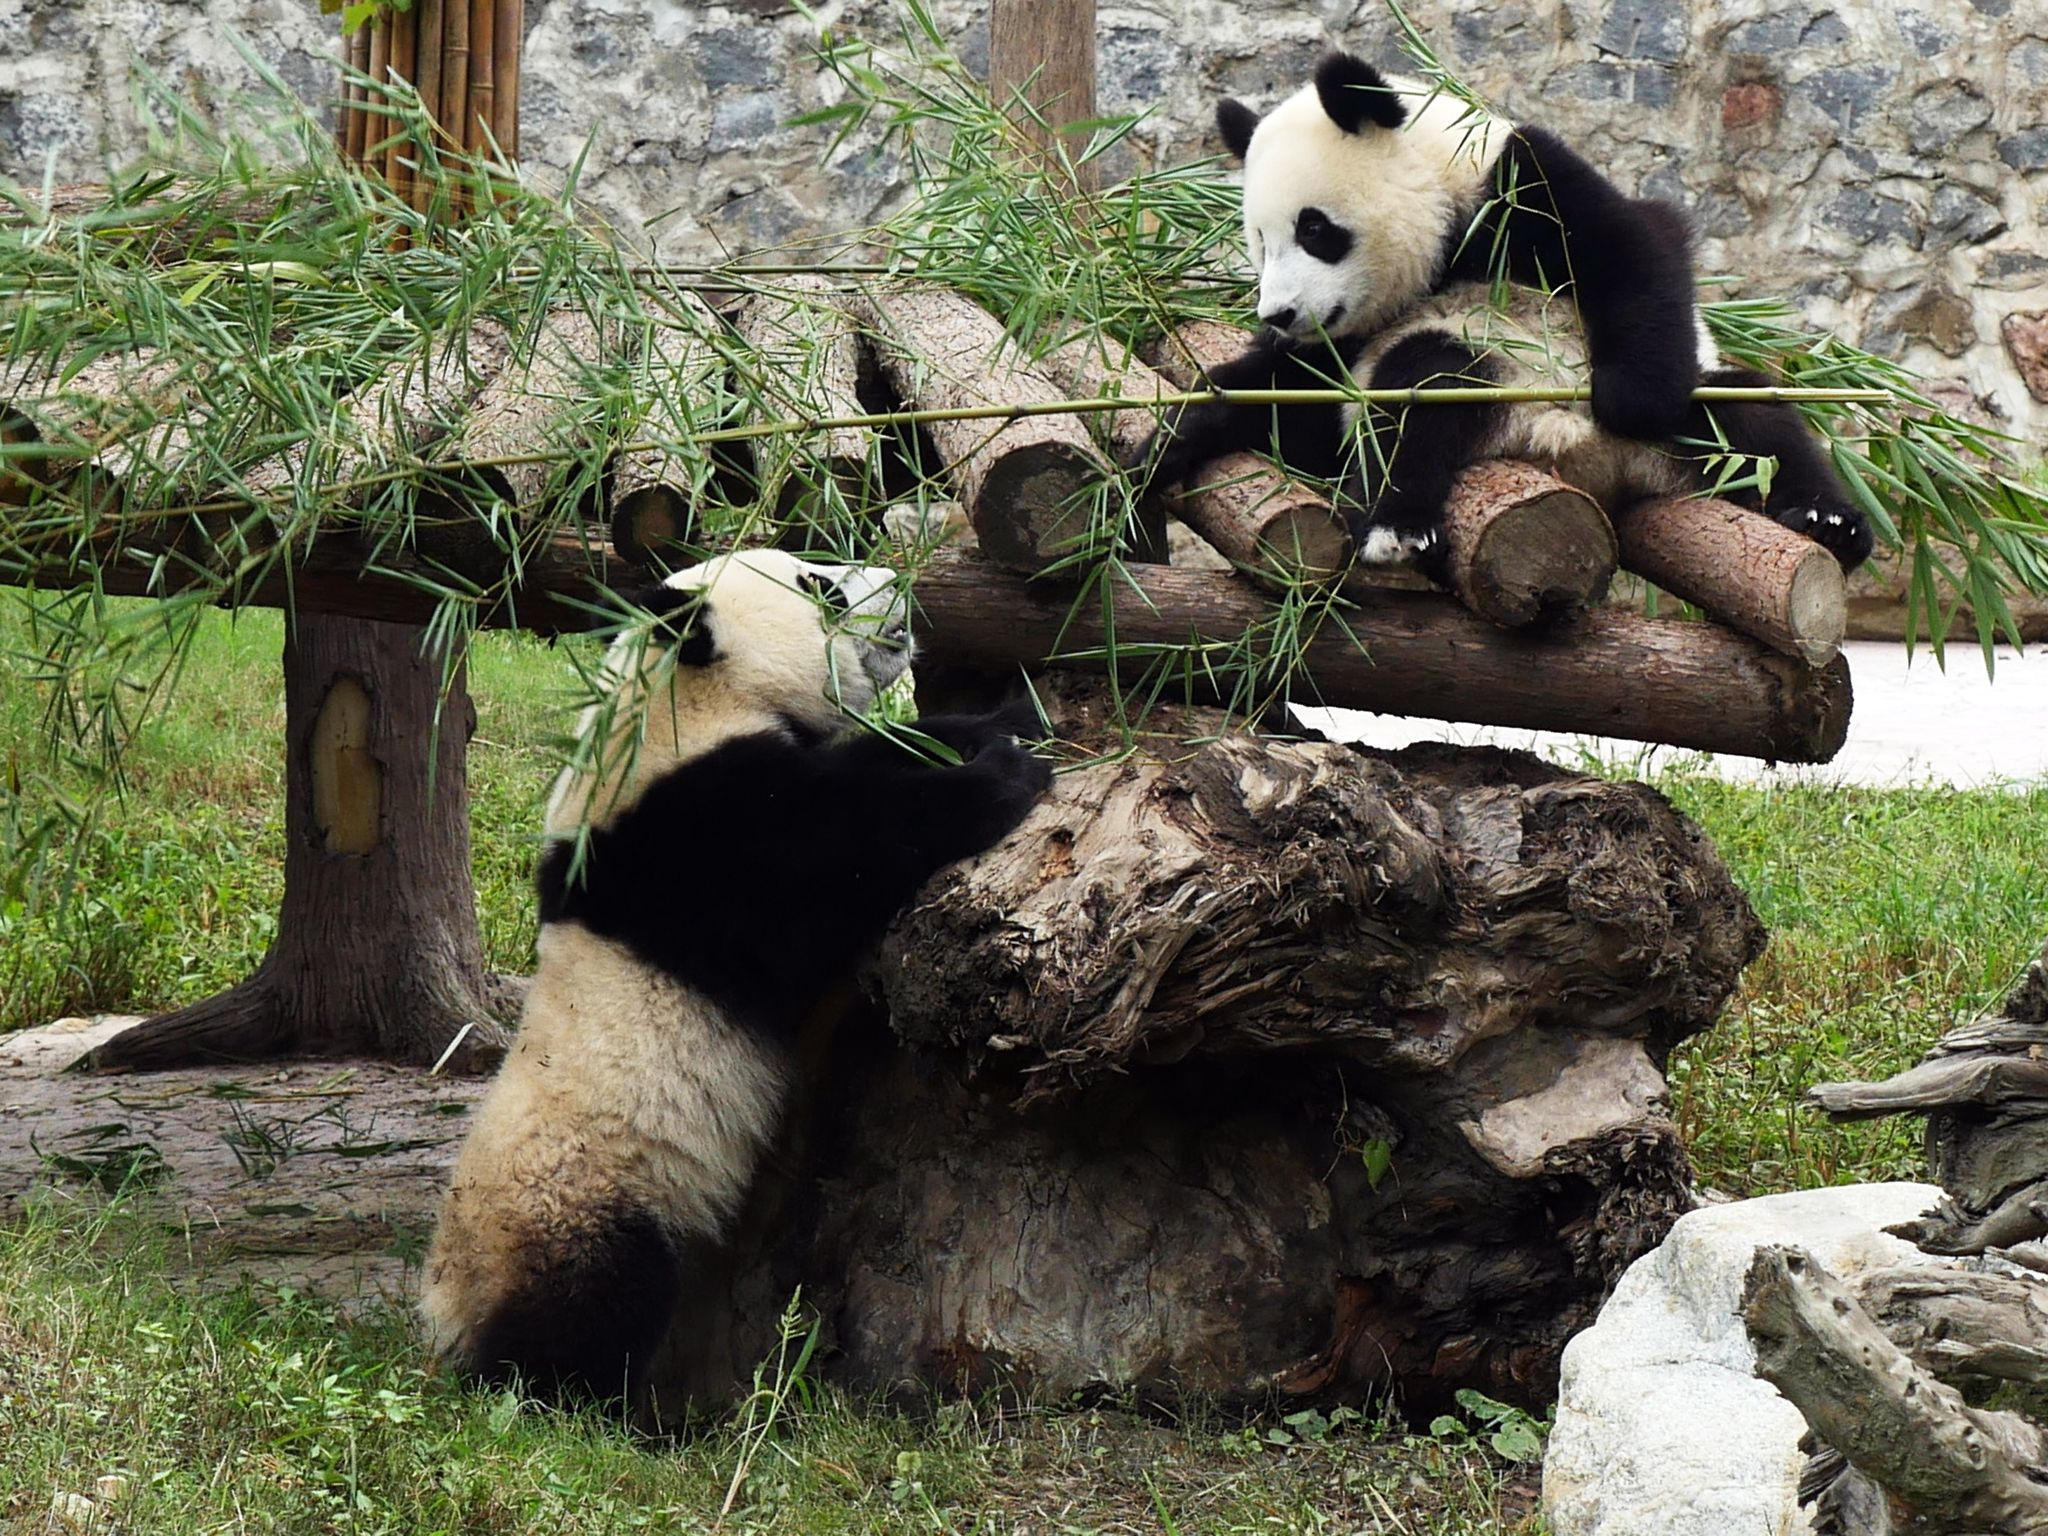 Fei Fei and Wang Lia playing with bamboo at Dujiangyan Panda Reserve. This image is from Panda... [Photo of the day - July 2016]